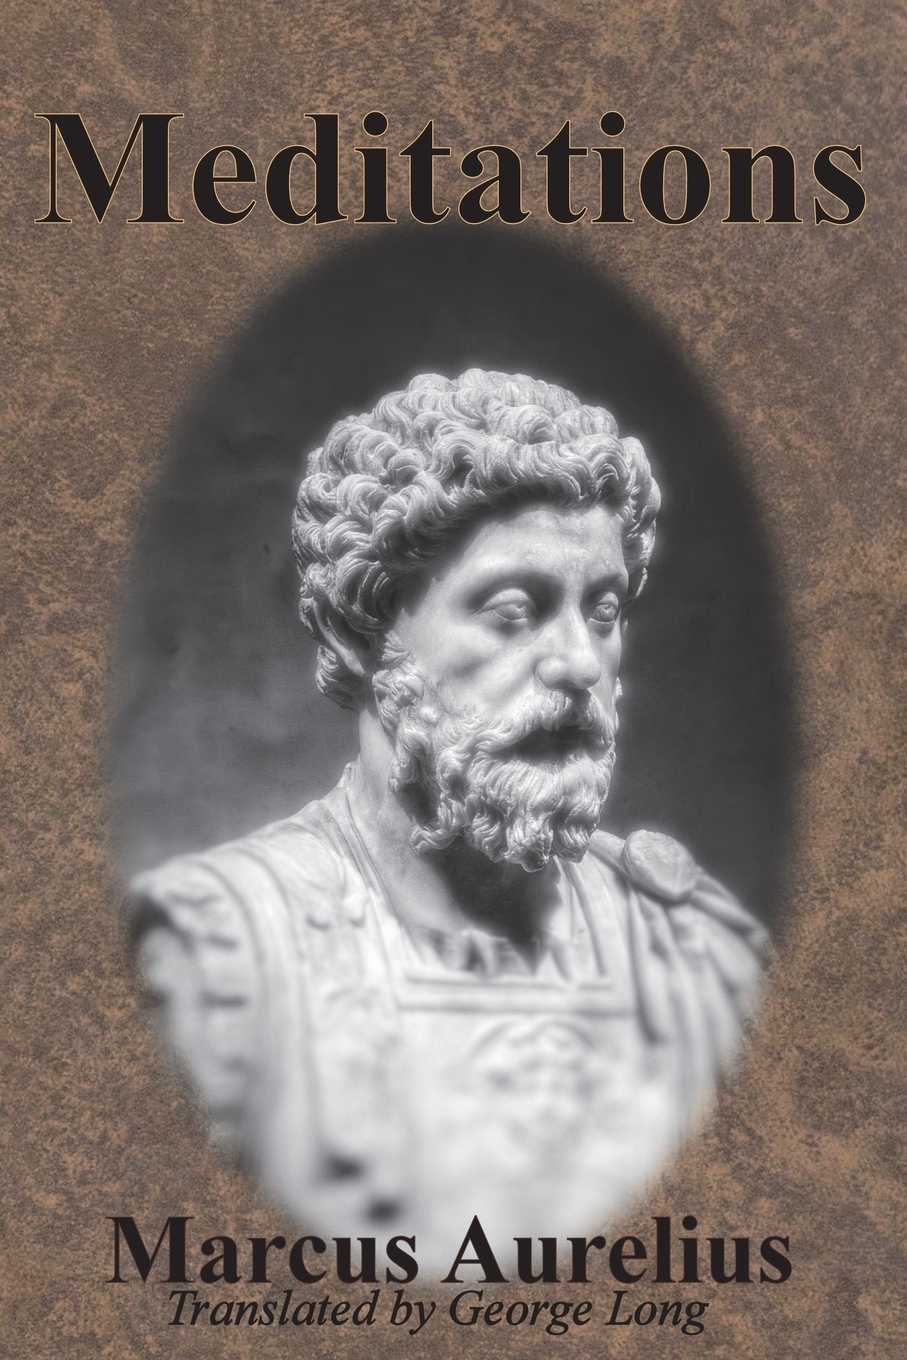 Marcus Aurelius, George Long Meditations george e marcus the relevance of ethnography today